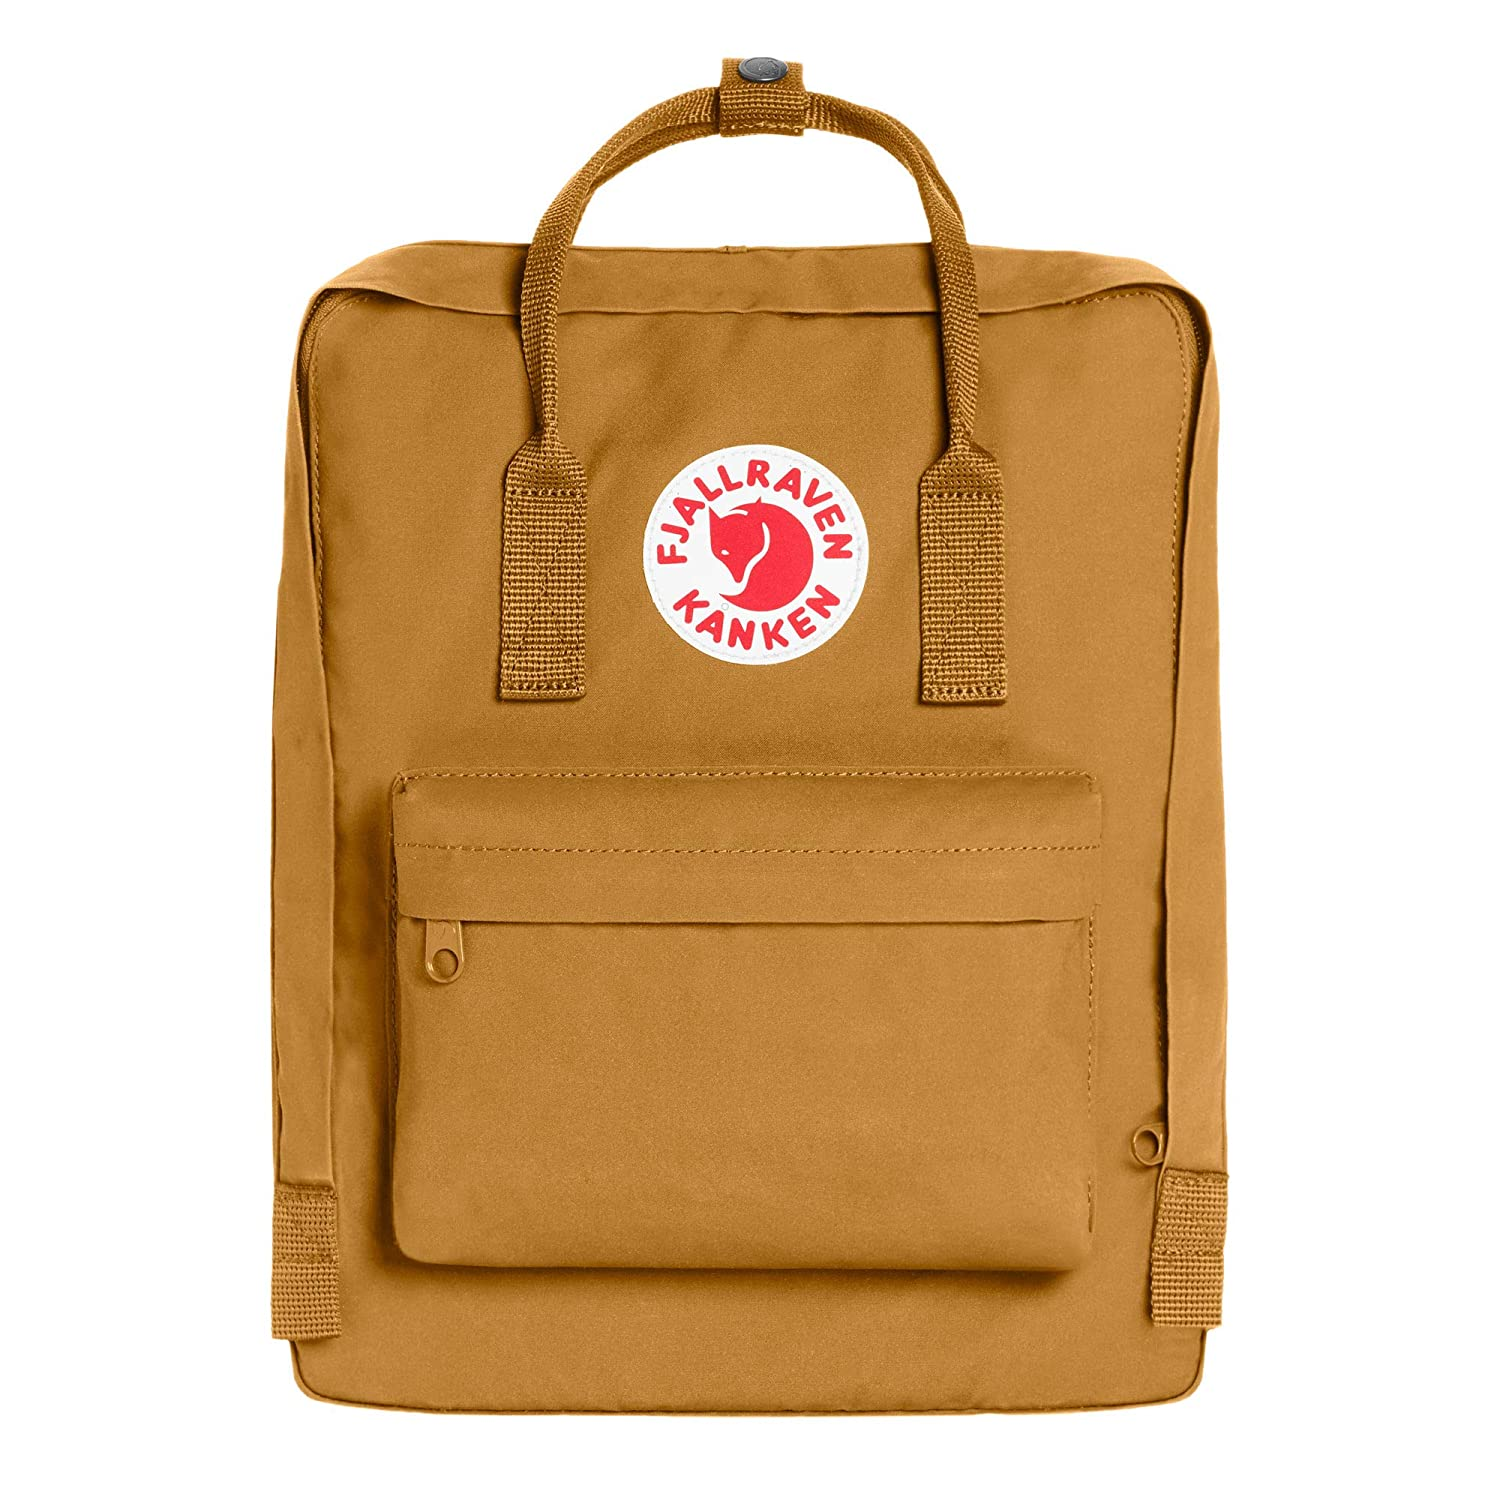 282f68d2d Amazon.com: Fjallraven - Kanken Classic Backpack for Everyday, Acorn:  Sports & Outdoors